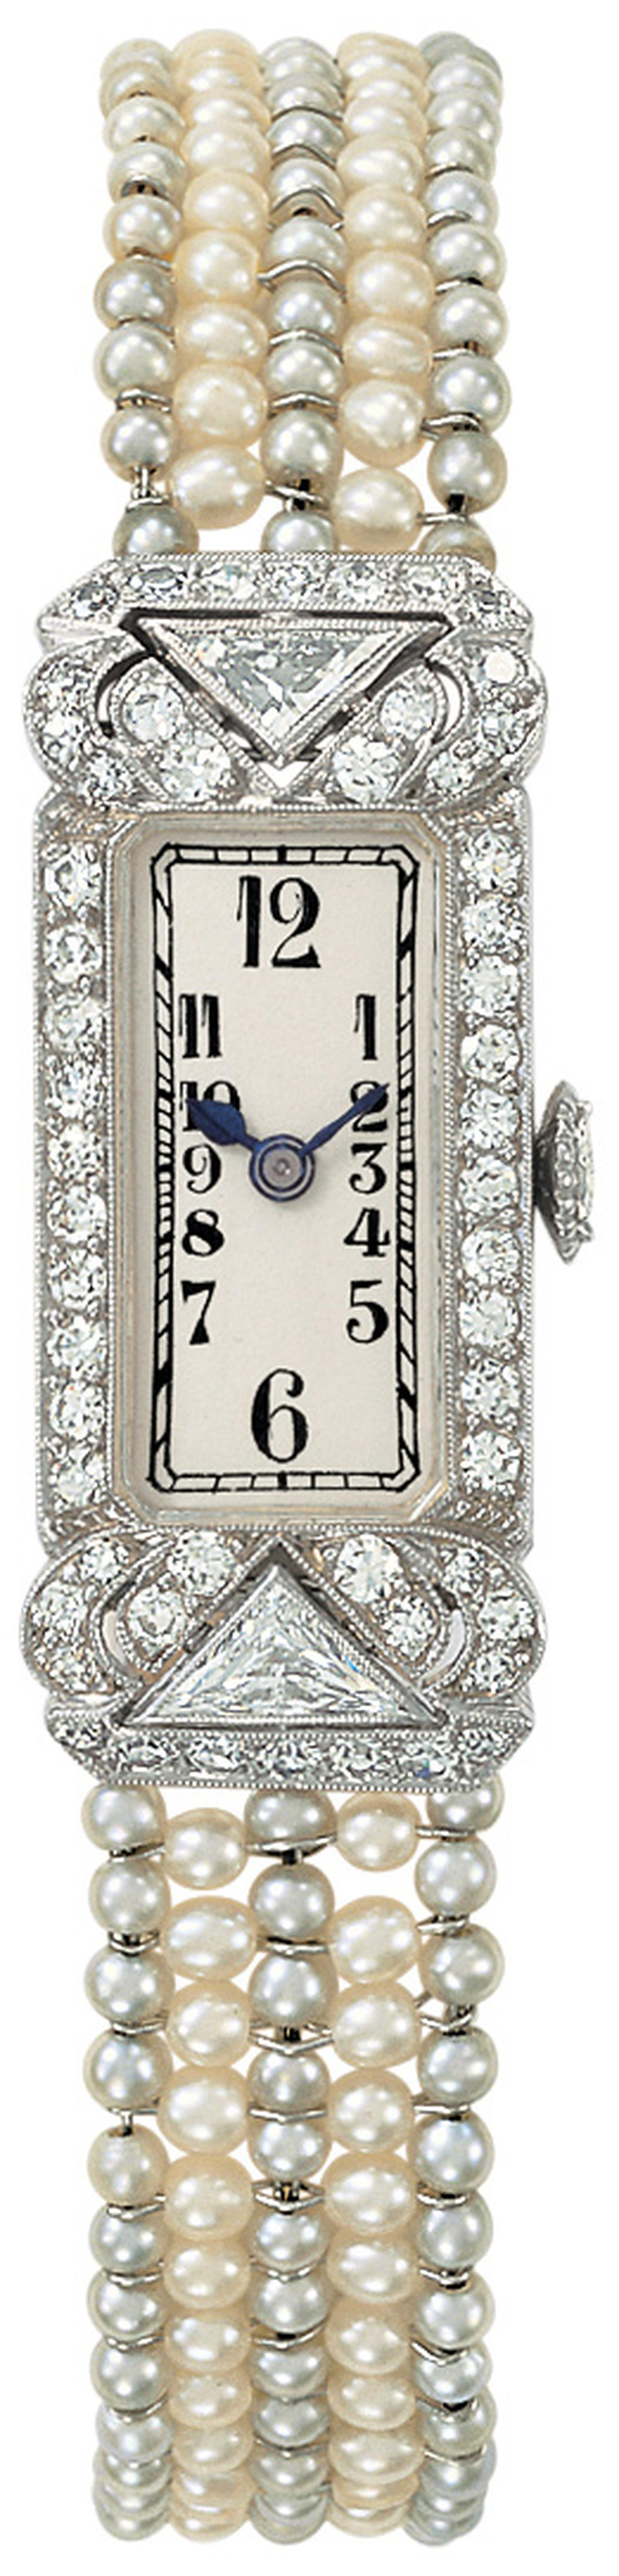 Patek-Philippe-P0641_a_100_collection_1925-40